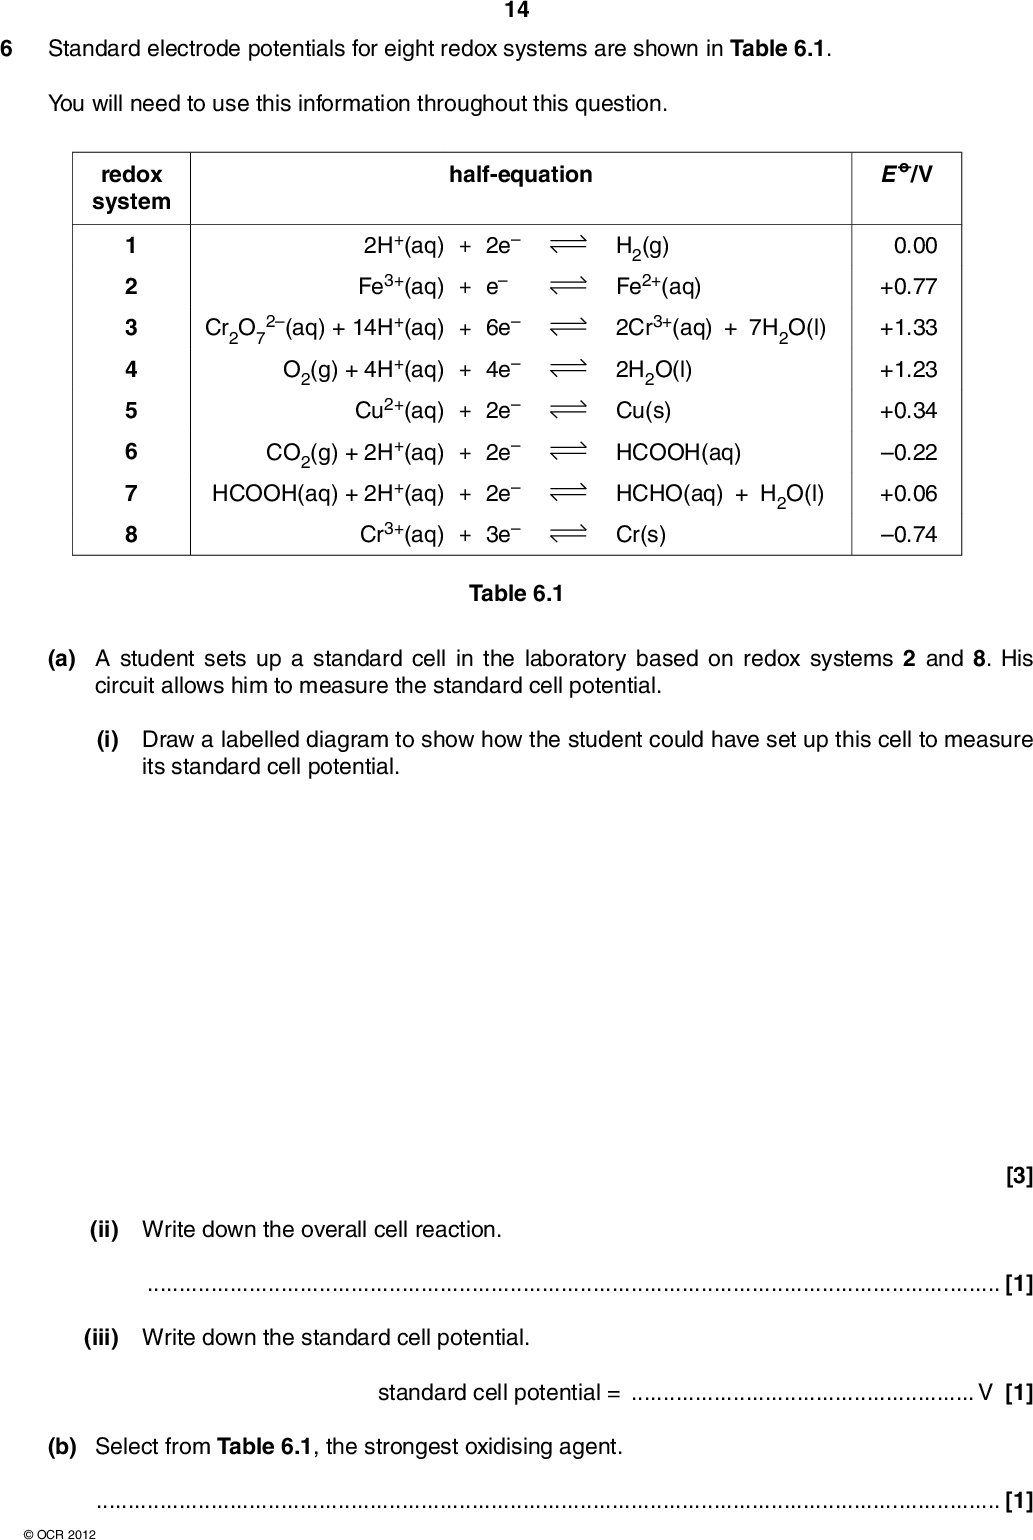 6 Standard electrode potentials for eight redox systems are shown in Table 6.1. You will need to use this information throughout this question. 14 redox system half-equation 1 2 3 4 5 6 7 8 Cr2O7 2H+(aq) + 2e Fe3+(aq) + e 2(aq) + 14H+(aq) + 6e O2(g) + 4H+(aq) + 4e Cu2+(aq) + 2e CO2(g) + 2H+(aq) + 2e HCOOH(aq) + 2H+(aq) + 2e Cr3+(aq) + 3e H2(g) Fe2+(aq) 2Cr3+(aq) + 7H2O(l) 2H2O(l) Cu(s) HCOOH(aq) HCHO(aq) + H2O(l) Cr(s) E o / V 0.00 +0.77 +1.33 +1.23 +0.34 0.22 +0.06 0.74 Table 6.1 (a) A student sets up a standard cell in the laboratory based on redox systems 2 and 8. His circuit allows him to measure the standard cell potential. (i) Draw a labelled diagram to show how the student could have set up this cell to measure its standard cell potential. (ii) Write down the overall cell reaction.[1] (iii) Write down the standard cell potential. [3] standard cell potential =V [1] (b) Select from Table 6.1, the strongest oxidising agent.[1]OCR 2012<br />  15 (c) Using the redox systems in Table 6.1, construct an equation for a reaction between acidified dichromate(VI) ions and methanoic acid, HCOOH. Rather than using [O] or [H], your equation must show the actual reactants and products. [2] (d) A student added some chromium metal to an acidified solution containing copper(II) ions. A reaction took place. The student concluded that chromium is more reactive than copper. (i) Explain, in terms of their electrode potentials, why chromium is more reactive than copper in this reaction.[2] (ii) When this experiment was carried out, the student observed some bubbles of a gas. Suggest an explanation for this observation.[1] (e) Methanoic acid, HCOOH, has the common name of formic acid. Direct-Formic Acid Fuel Cells (DFAFCs) are being developed for use in small, portable electronics such as phones and laptop computers. In this fuel cell, methanoic acid (the fuel) reacts with oxygen to generate a cell potential. (i) Predict the standard cell potential of a DFAFC. standard cell potential